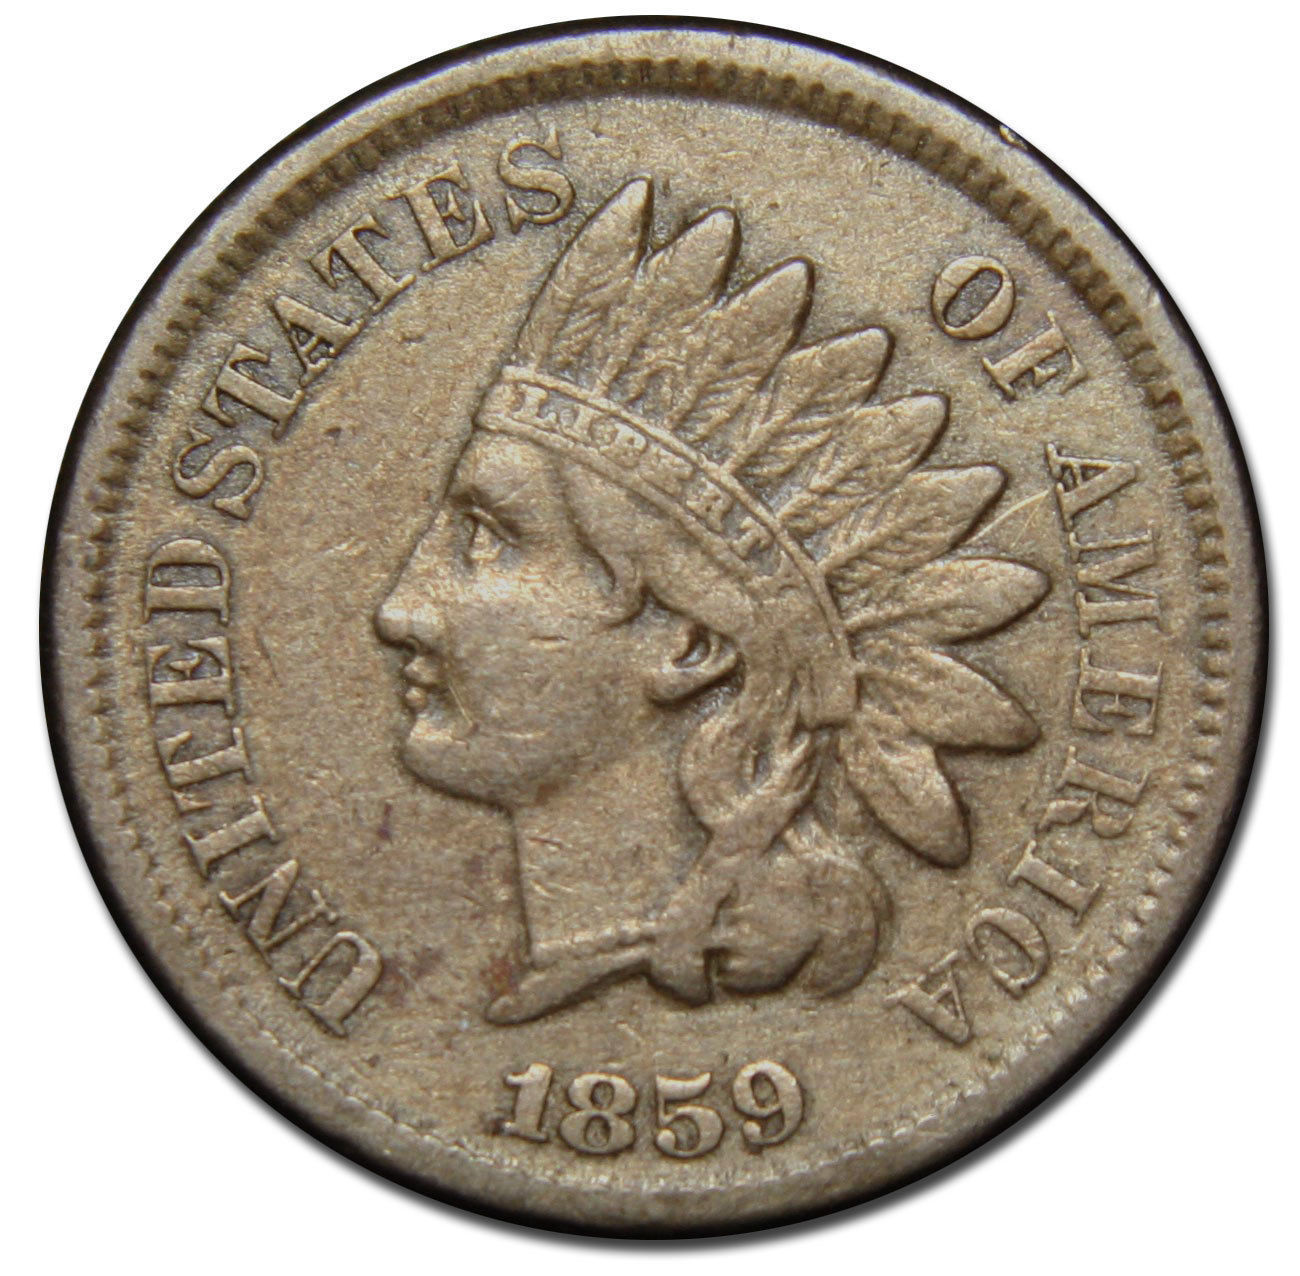 1859 Indian Head Penny / Cent Coin Lot# MZ 2758